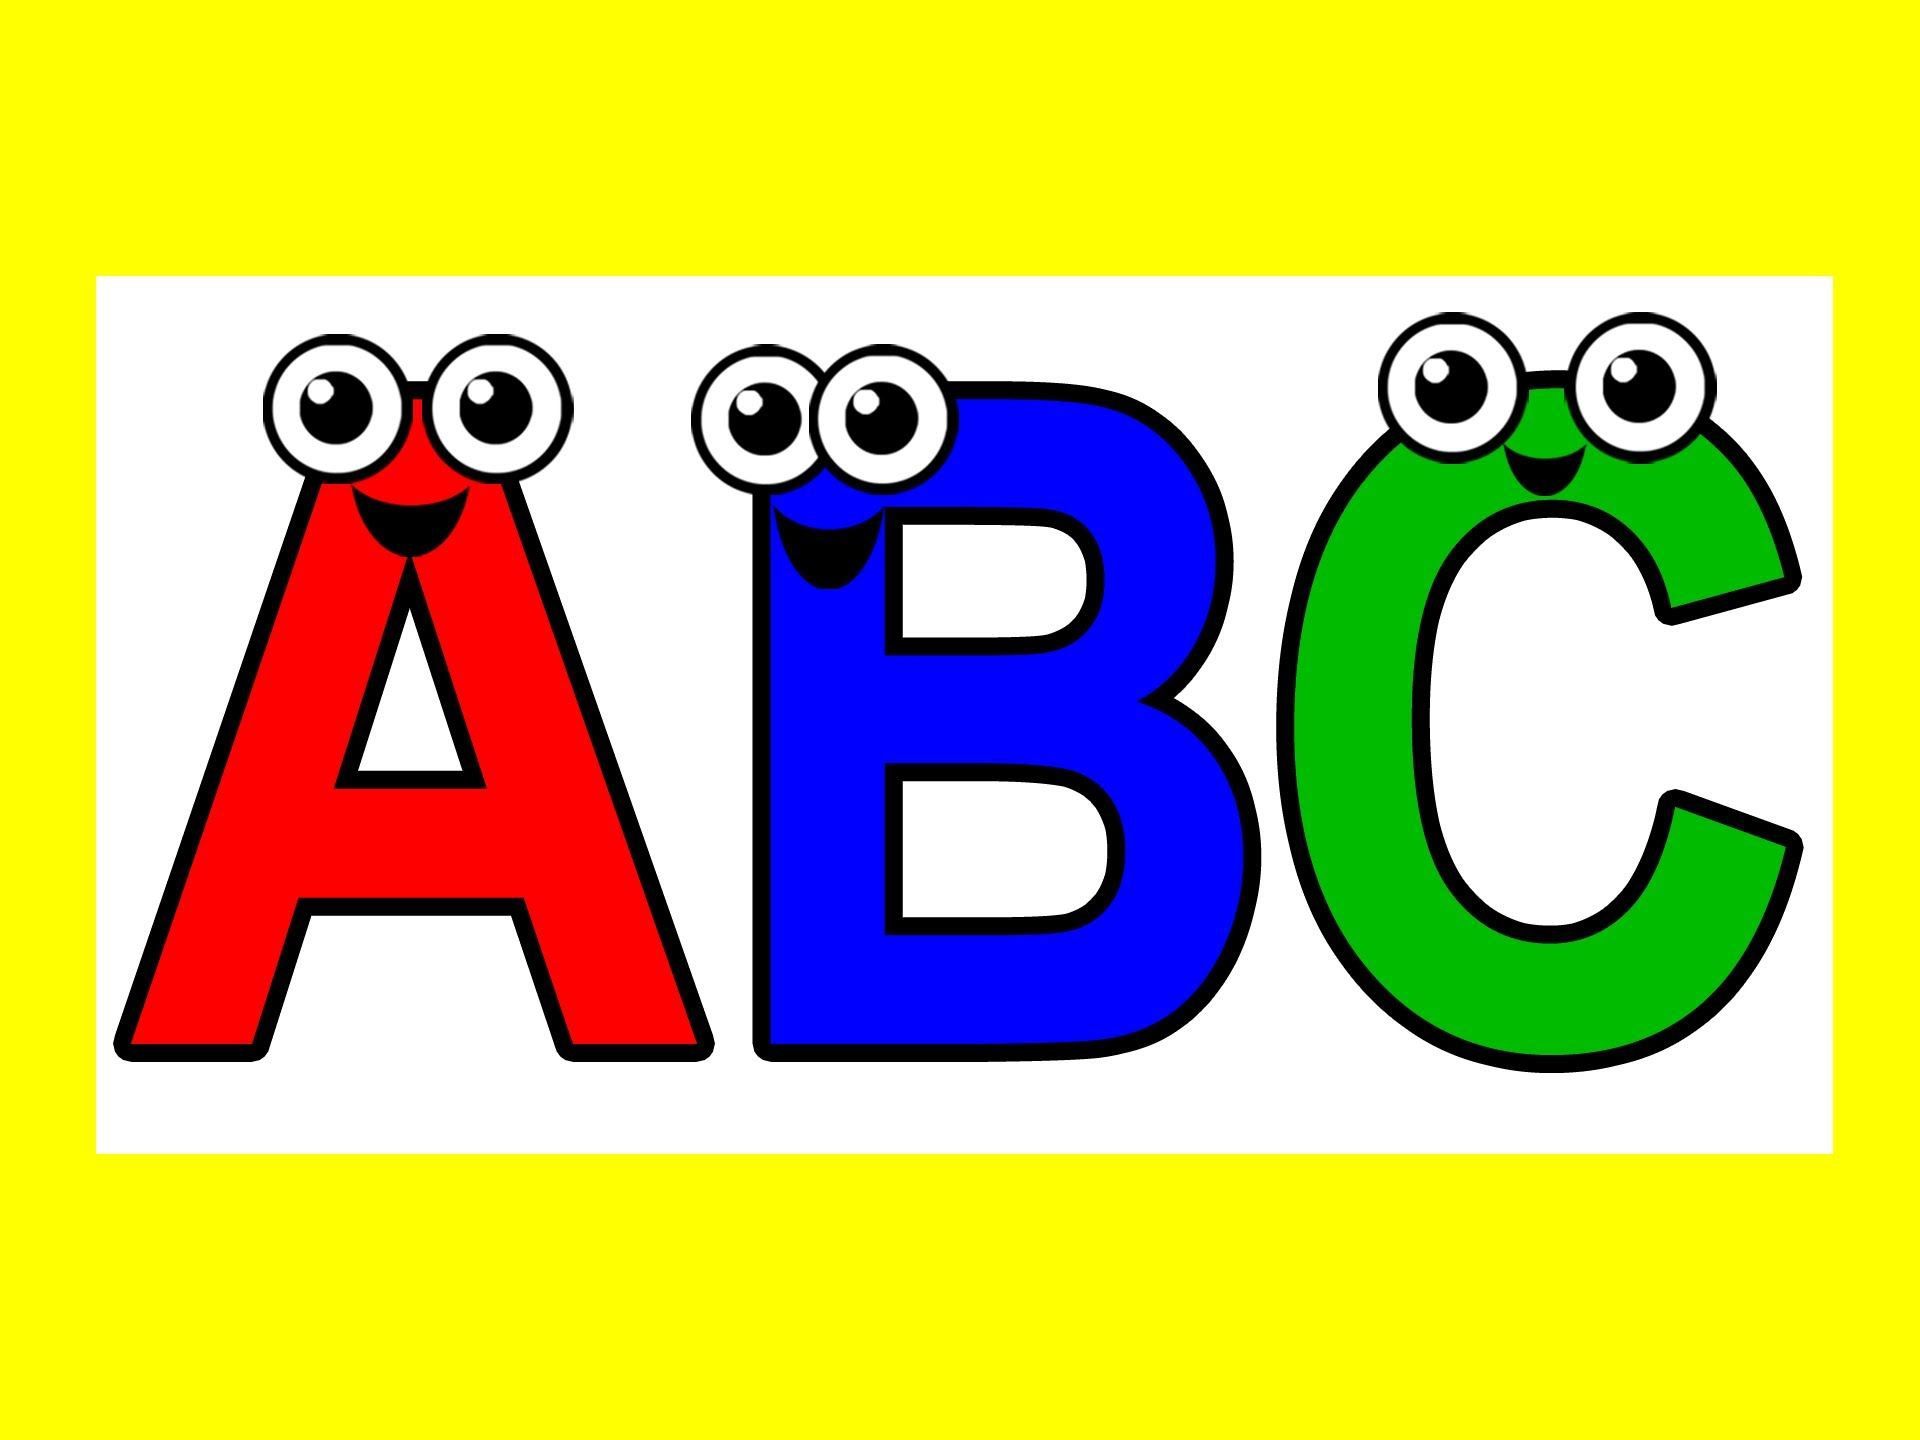 Pin by Peggy Mimm on Baby Teaching phonics, Abc songs